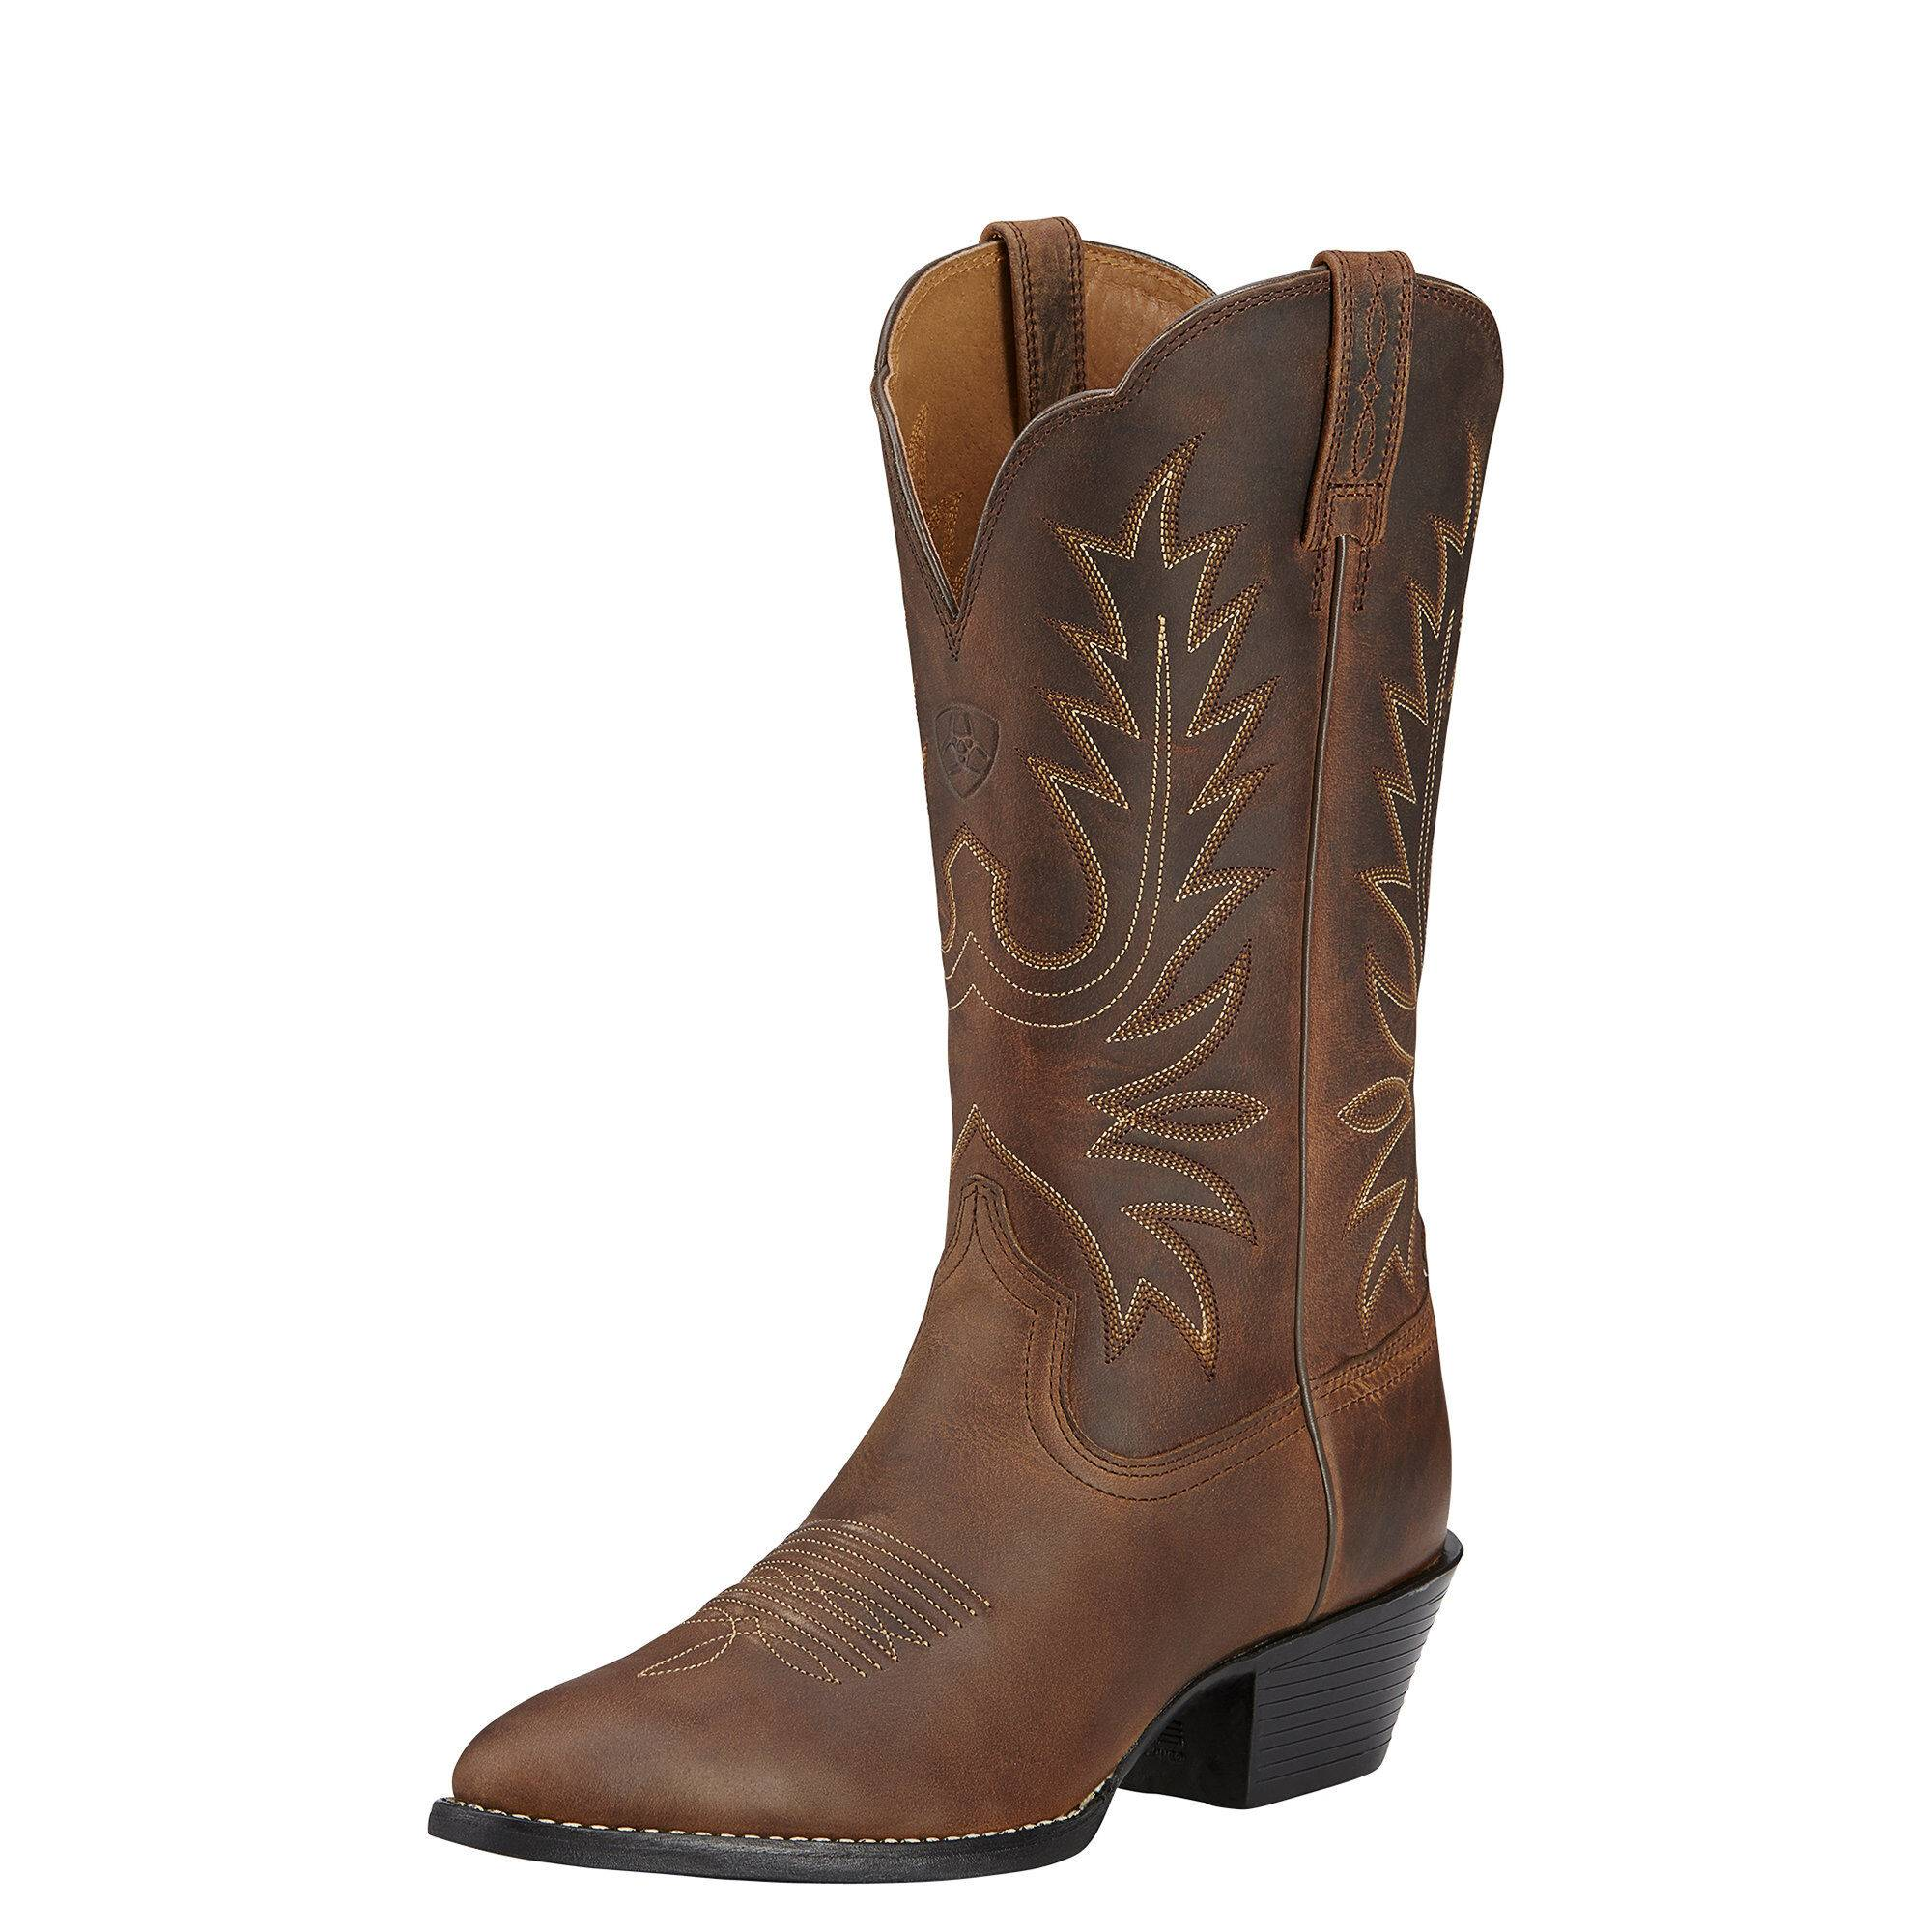 Ariat Women's Heritage R Toe Western Boots in Distressed Brown, Size 9 B / Medium by Ariat